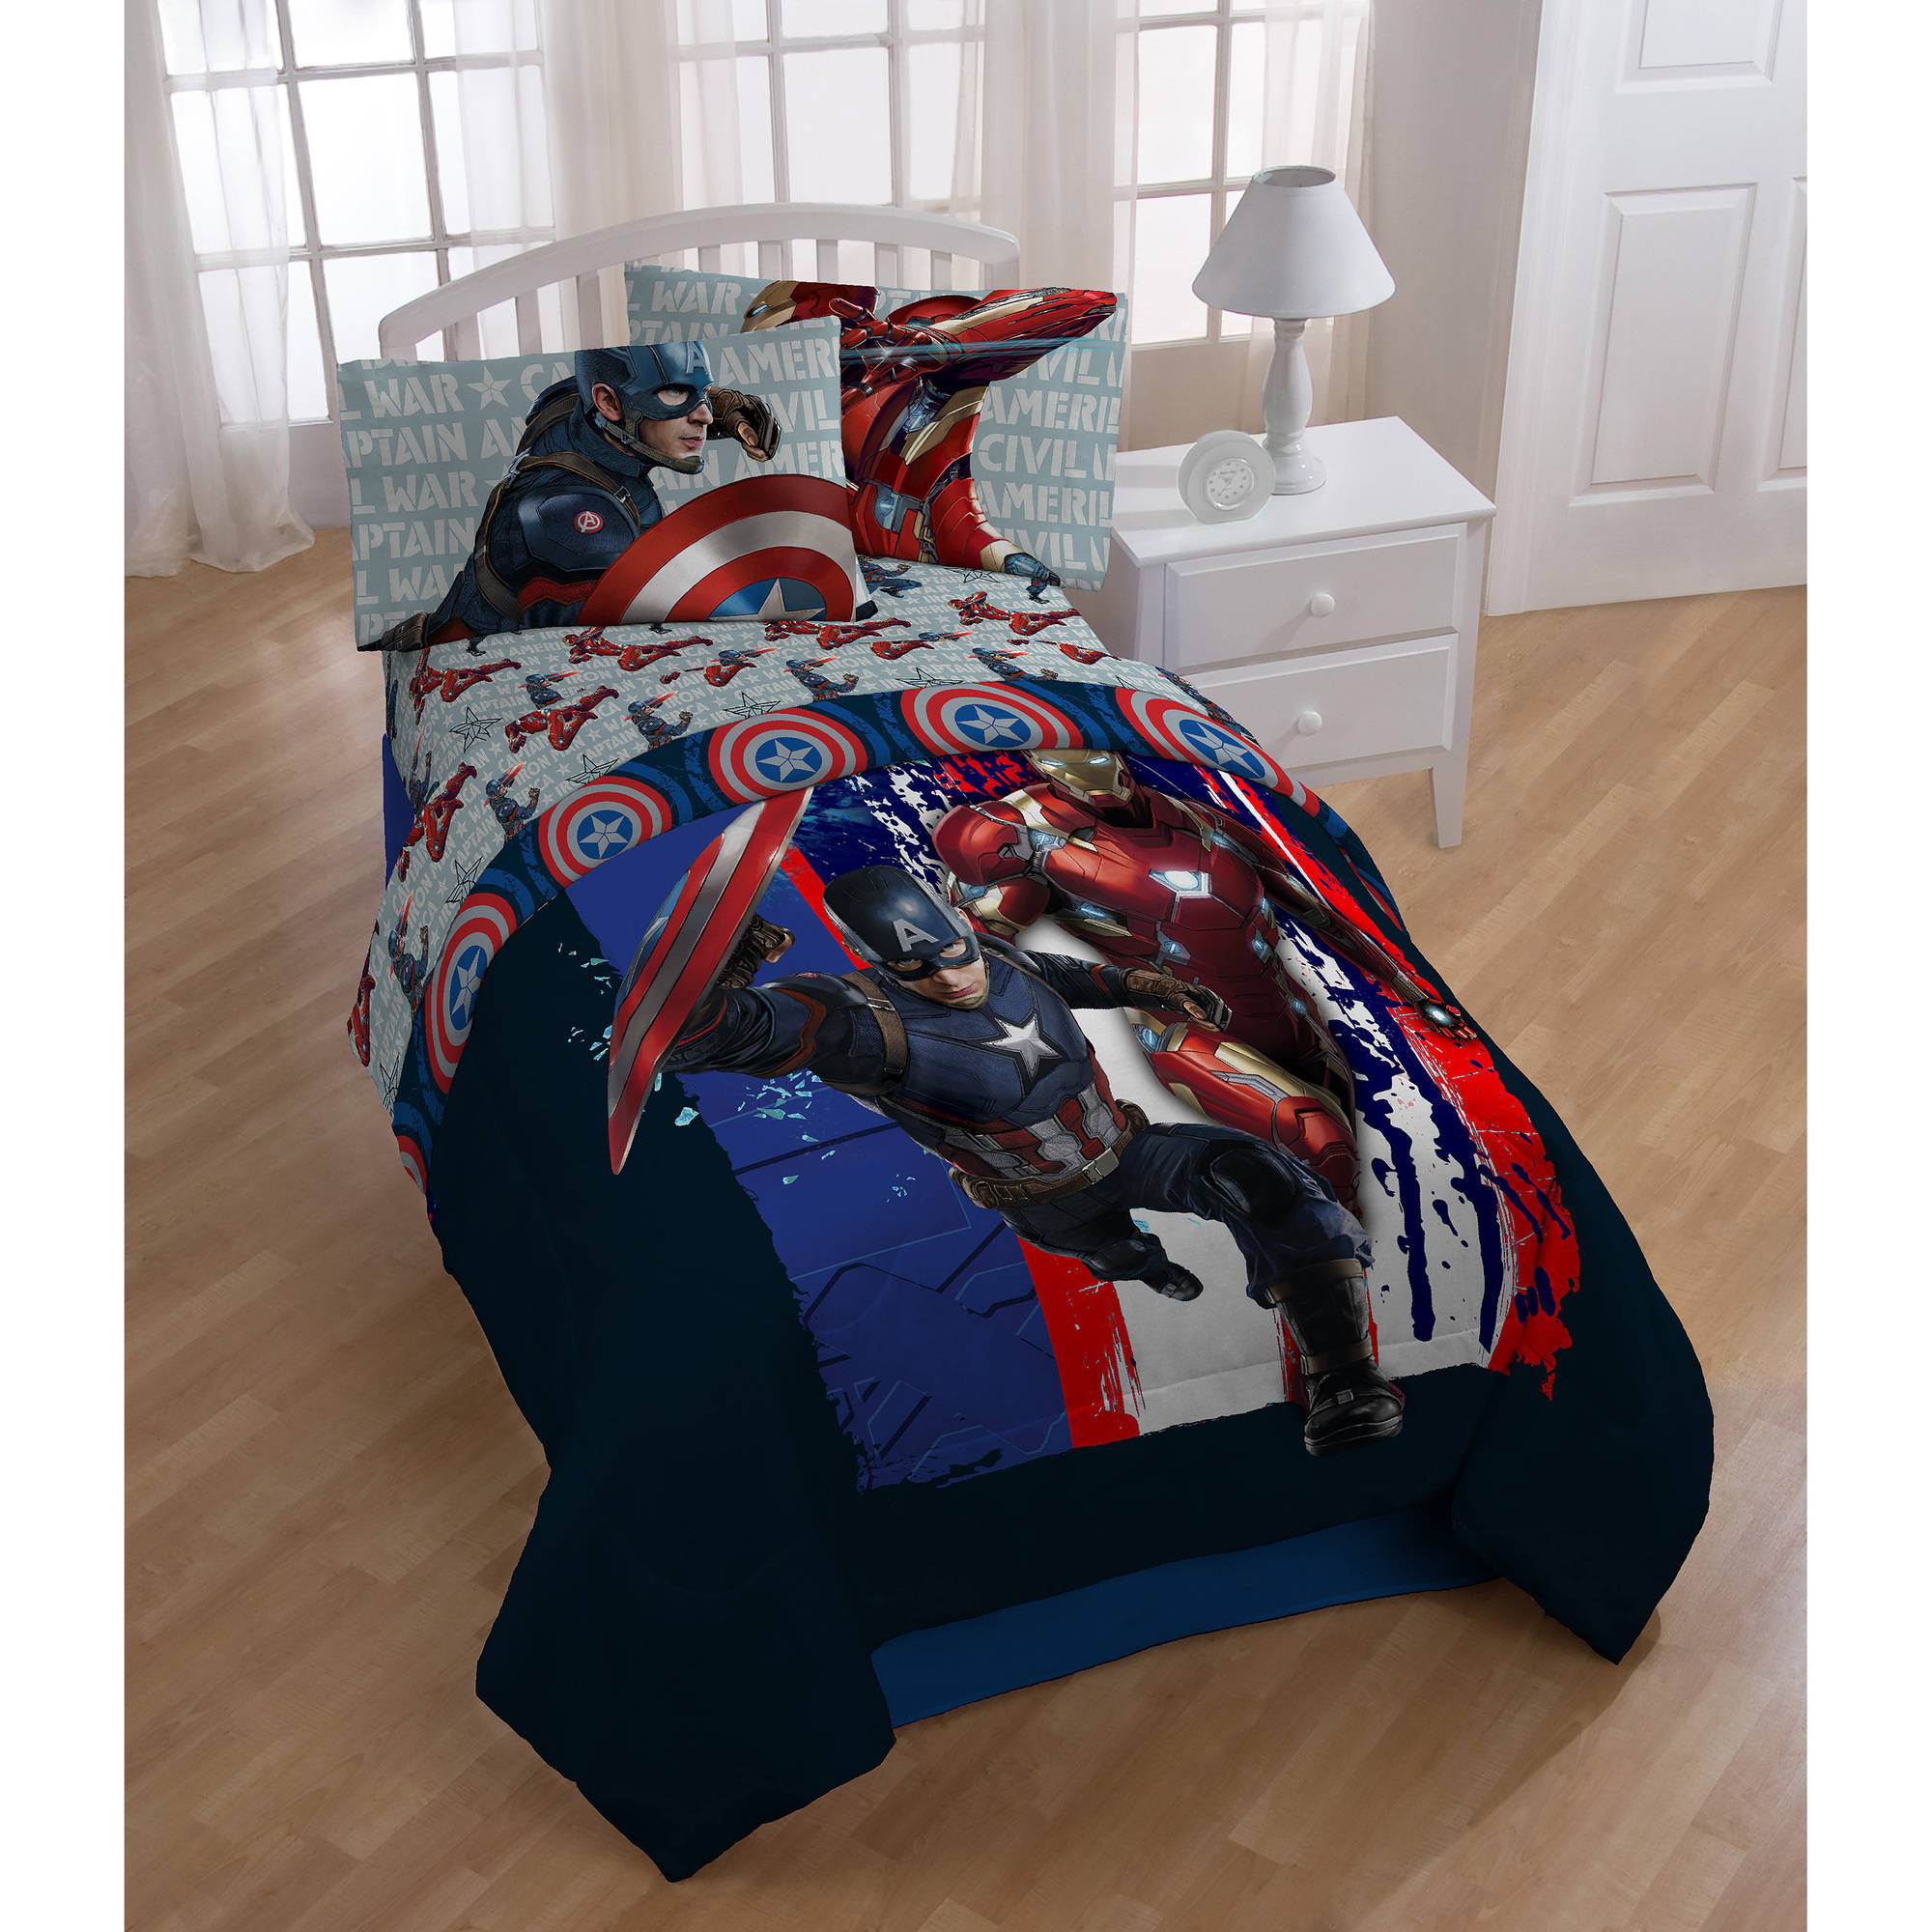 "Marvel Civil War ""Lightning"" Twin Comforter"